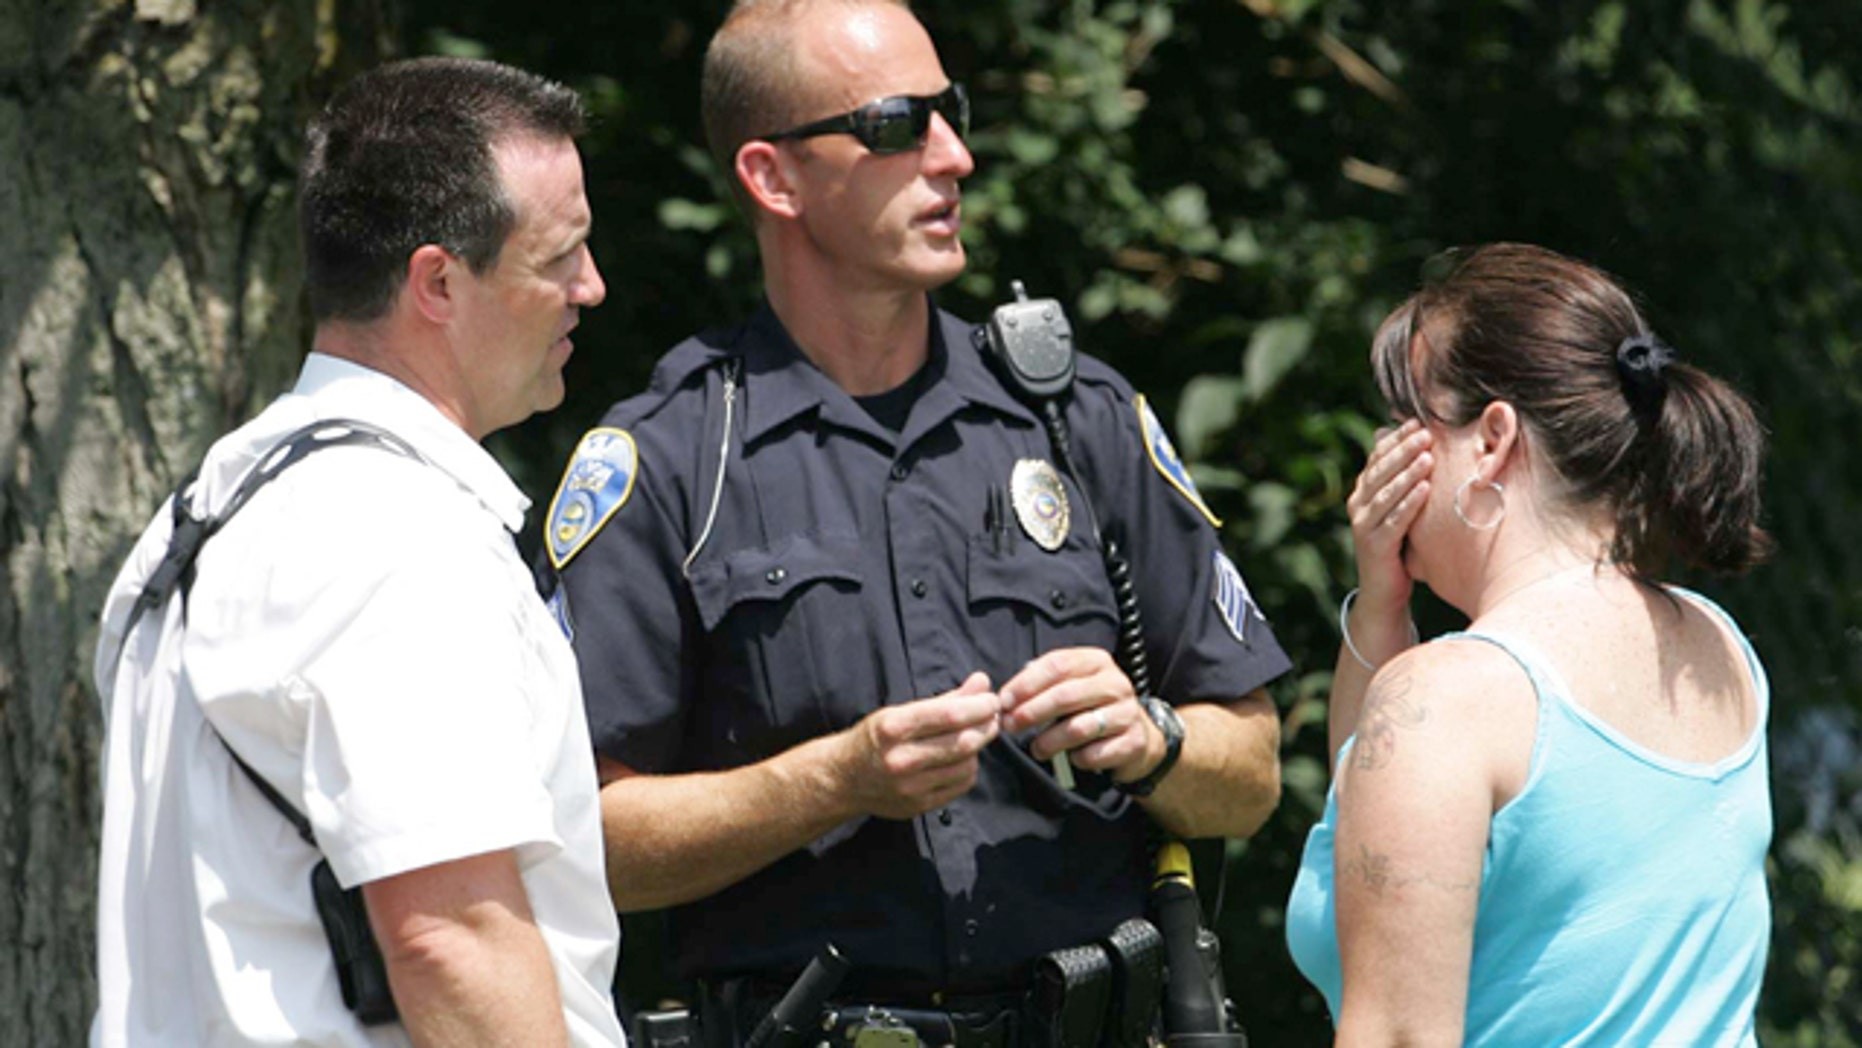 Aug. 7: Members of the Akron Police Department talk to an unidentified woman who claimed to be a relative at the scene of a multiple fatal shooting.